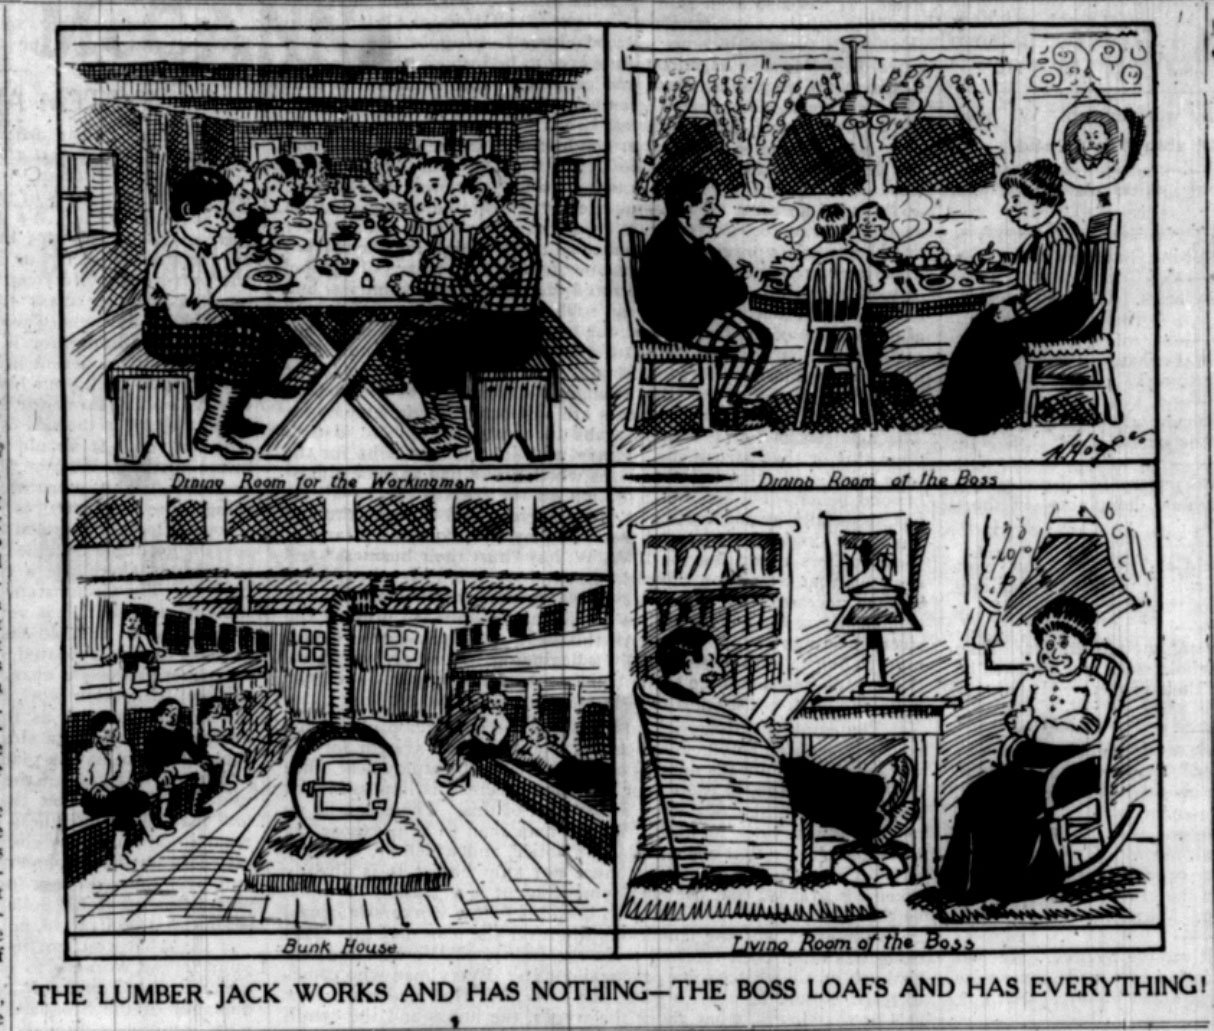 IWW cartoon contrasts the lifestyle lead by the workingman against that of the employer.